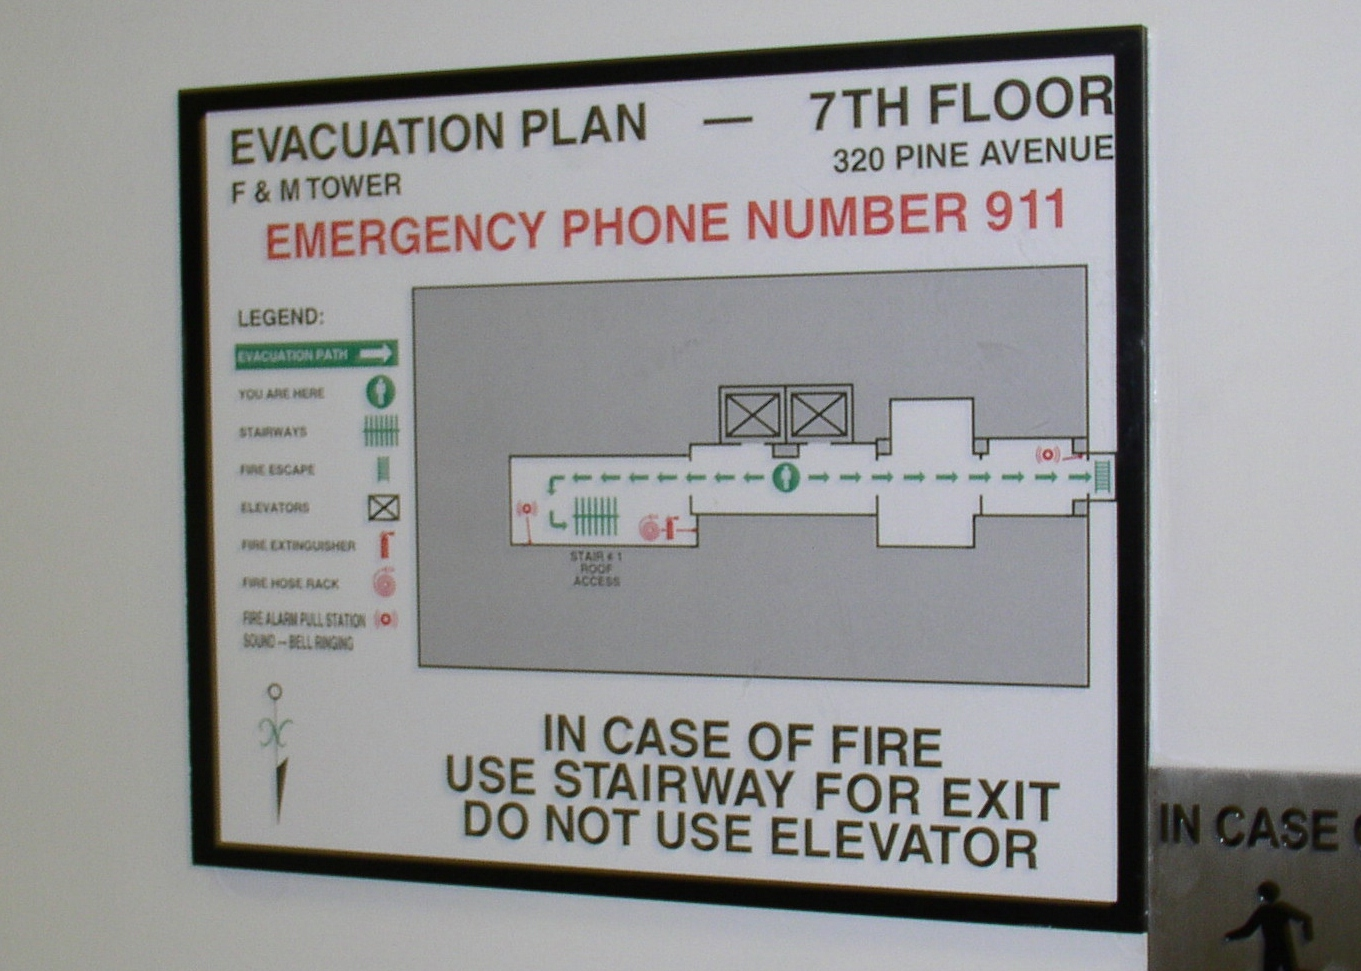 Evacuation Route Plan